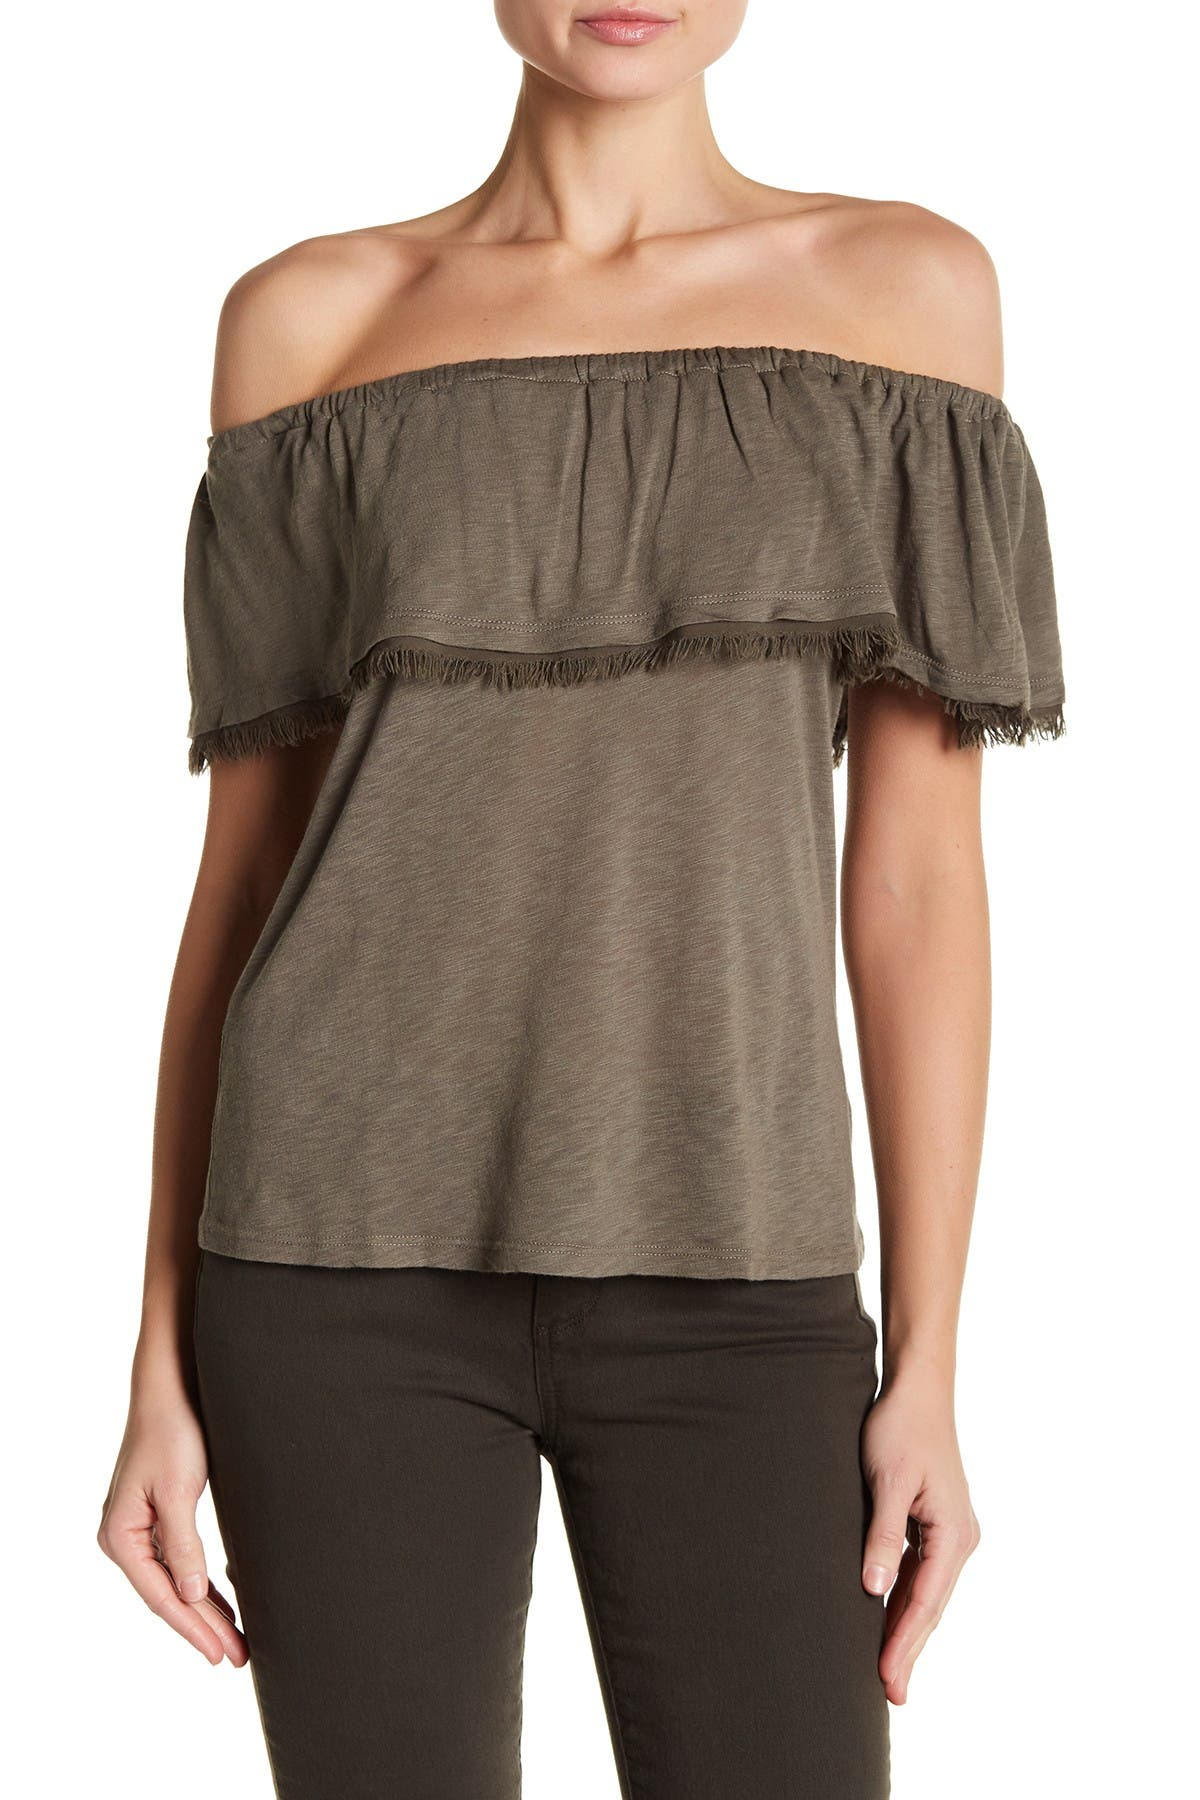 Image of Splendid Off the Shoulder Ruffle Top